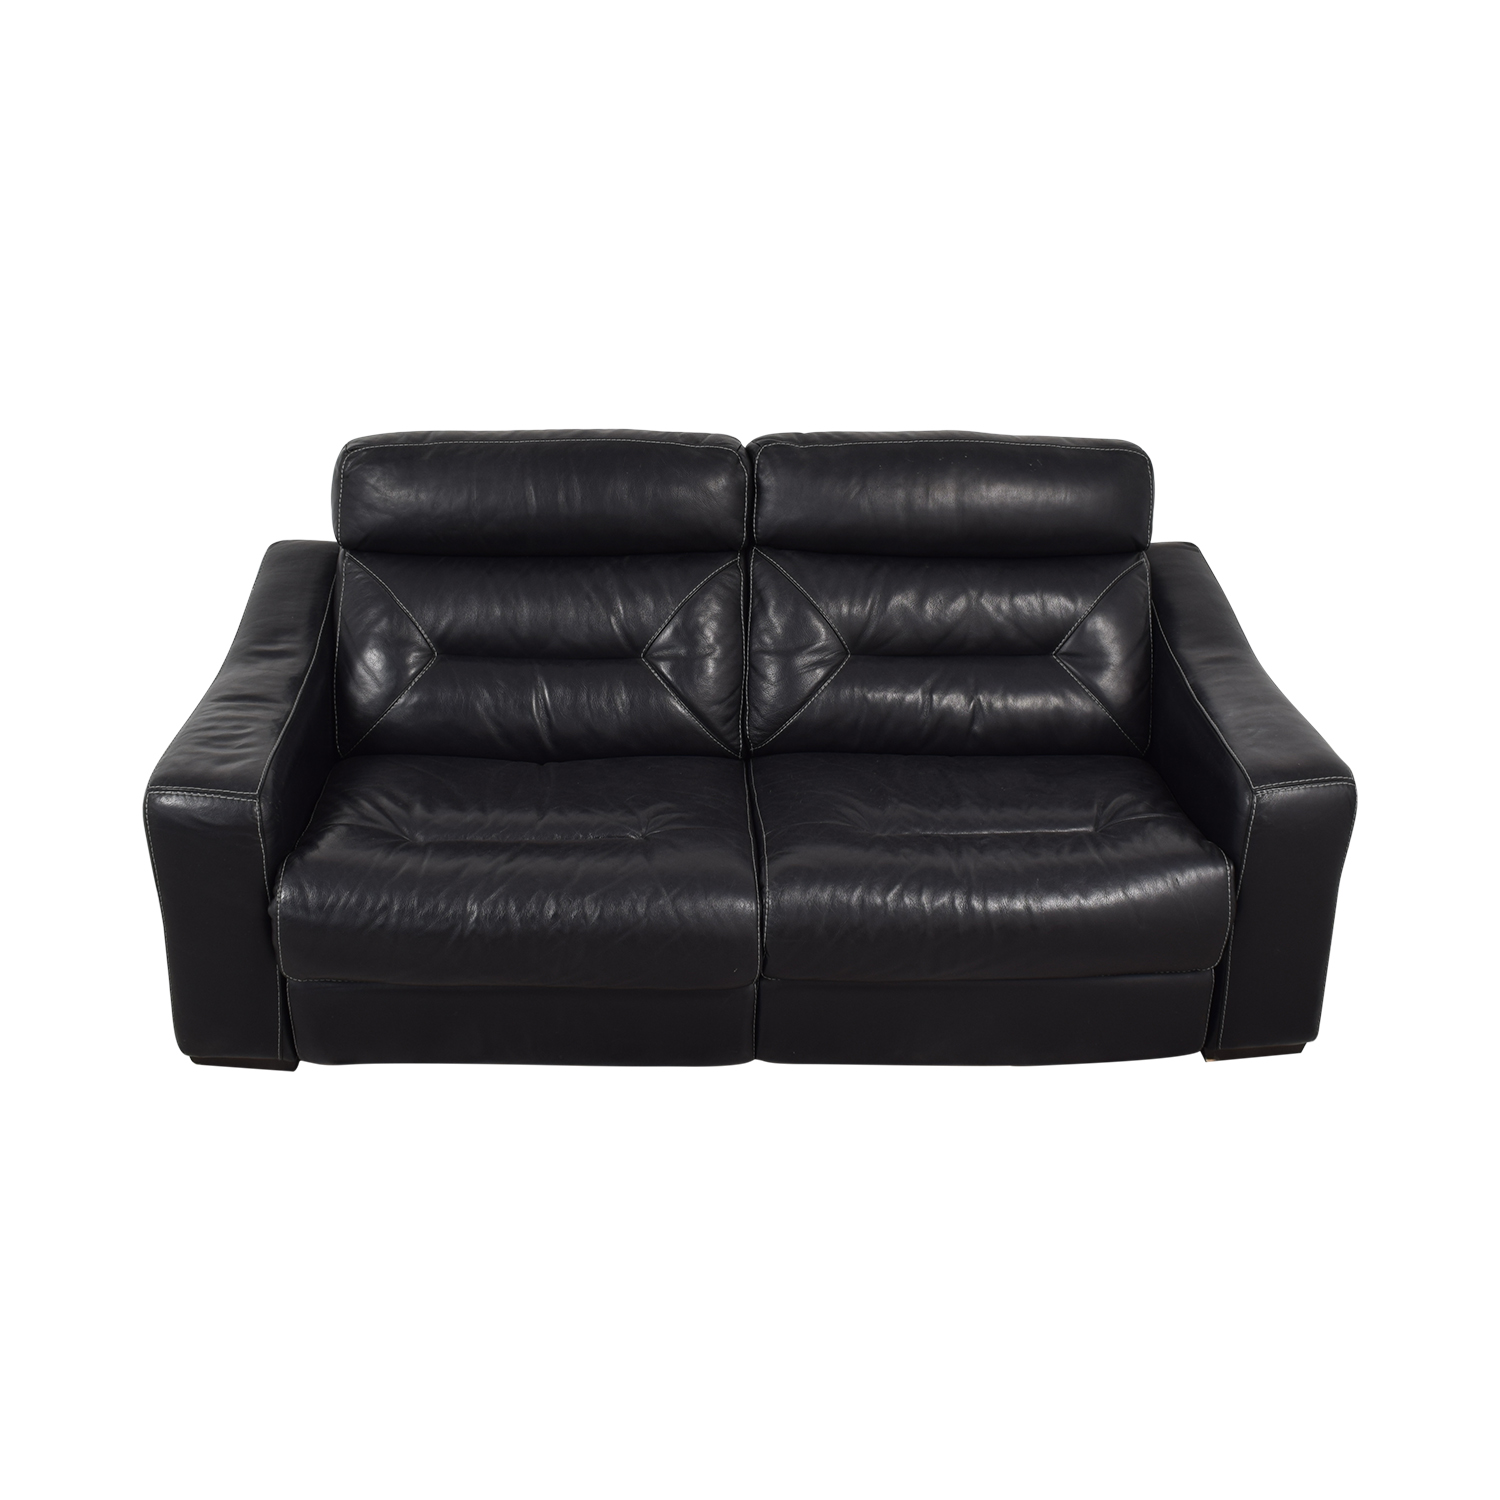 buy Macy's Judson Leather Dual Power Reclining Loveseat Macy's Classic Sofas